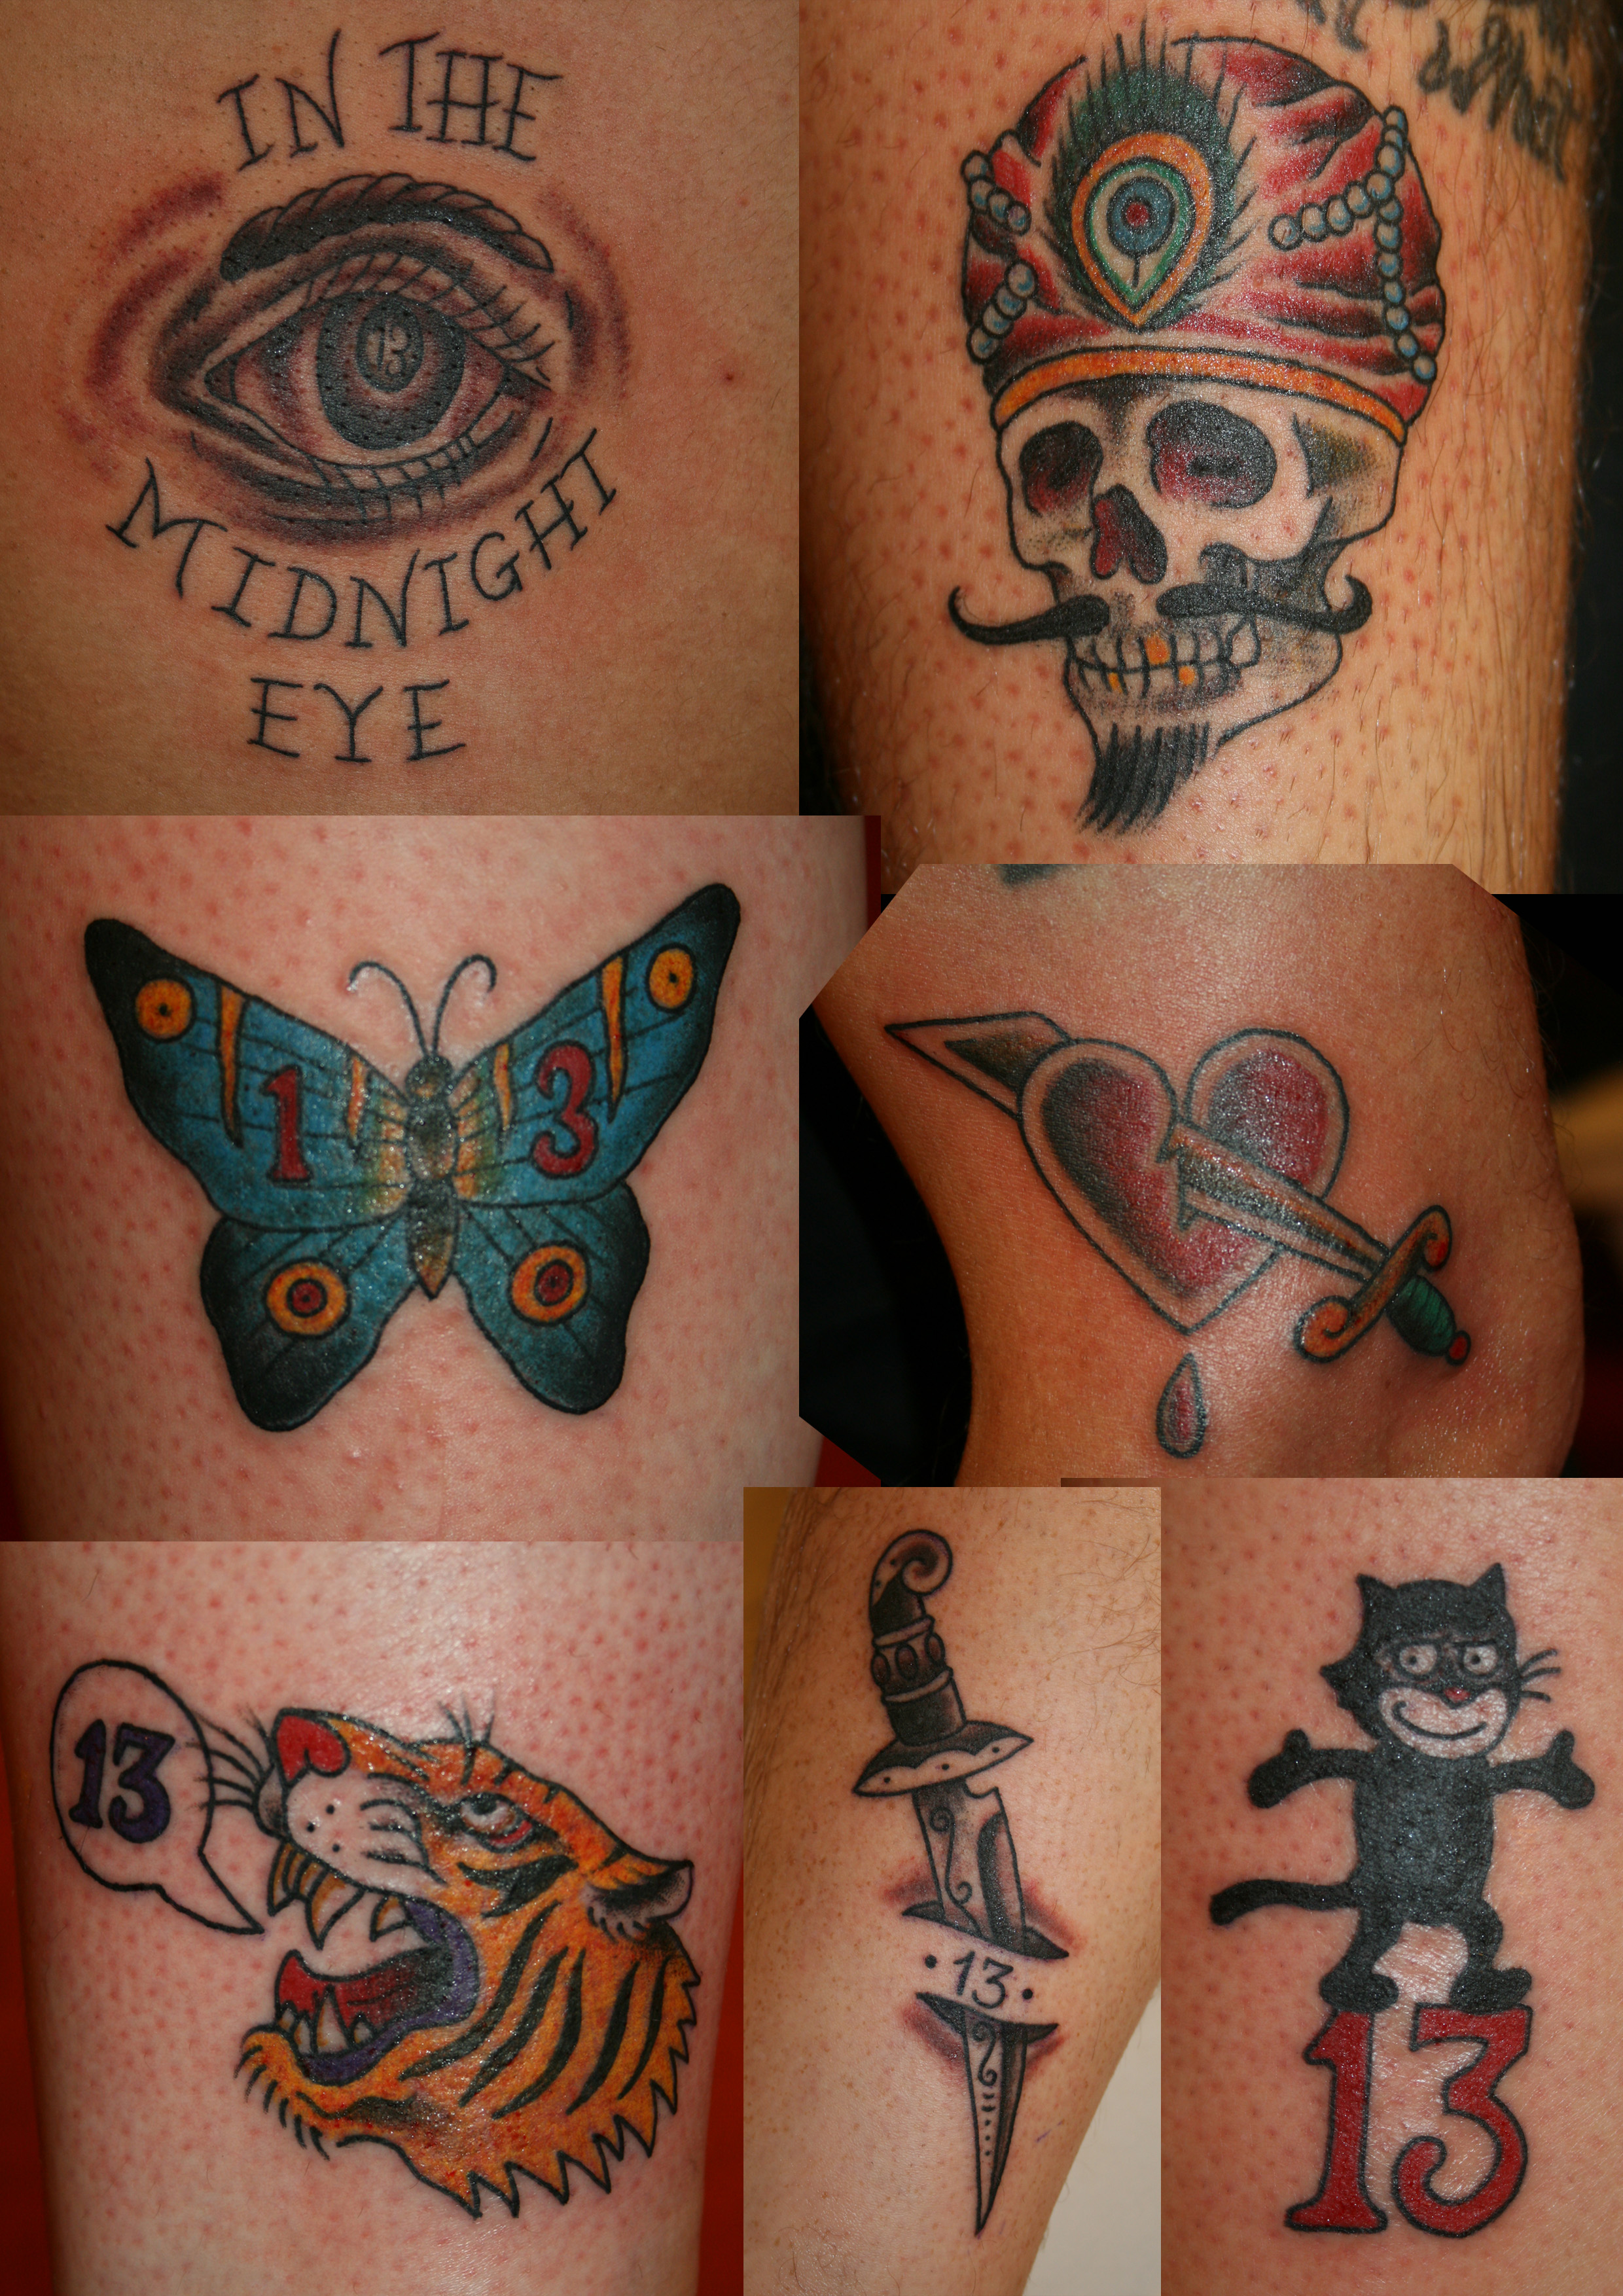 Tattoo | Death Goes To the Winner